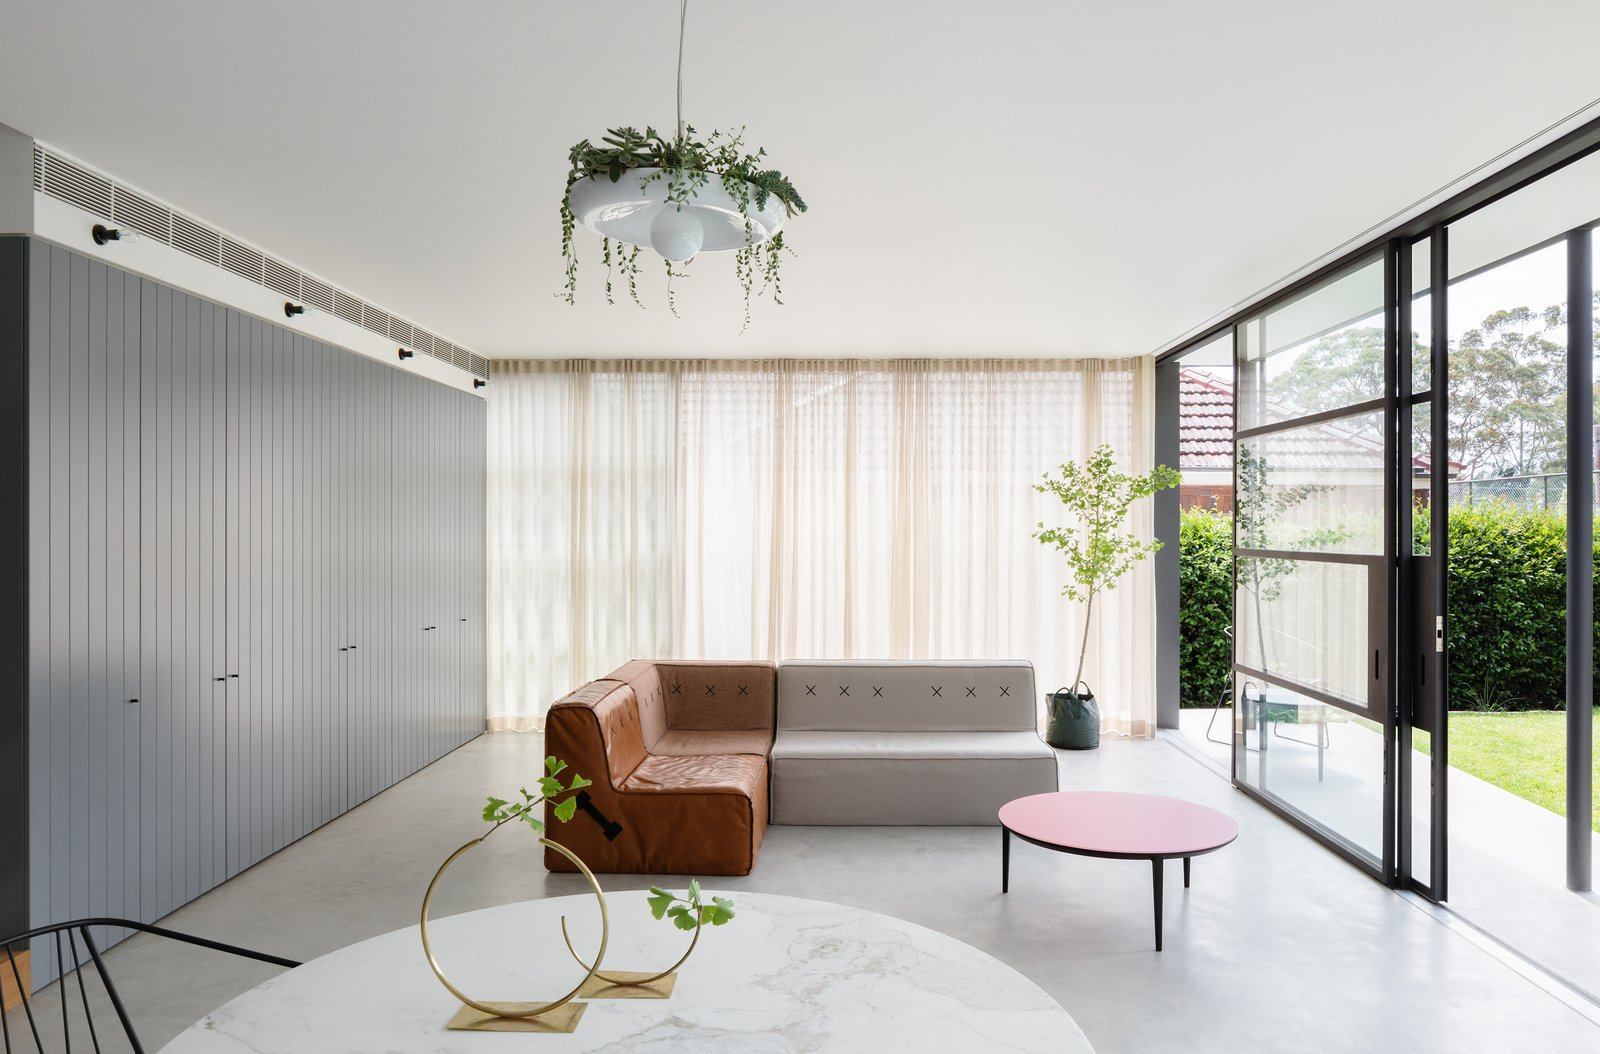 Living Room, Sofa, Coffee Tables, Ceiling Lighting, and Storage  Photo 4 of 13 in This 1930s Bungalow in Sydney Was Preserved in the Front and Updated in the Back